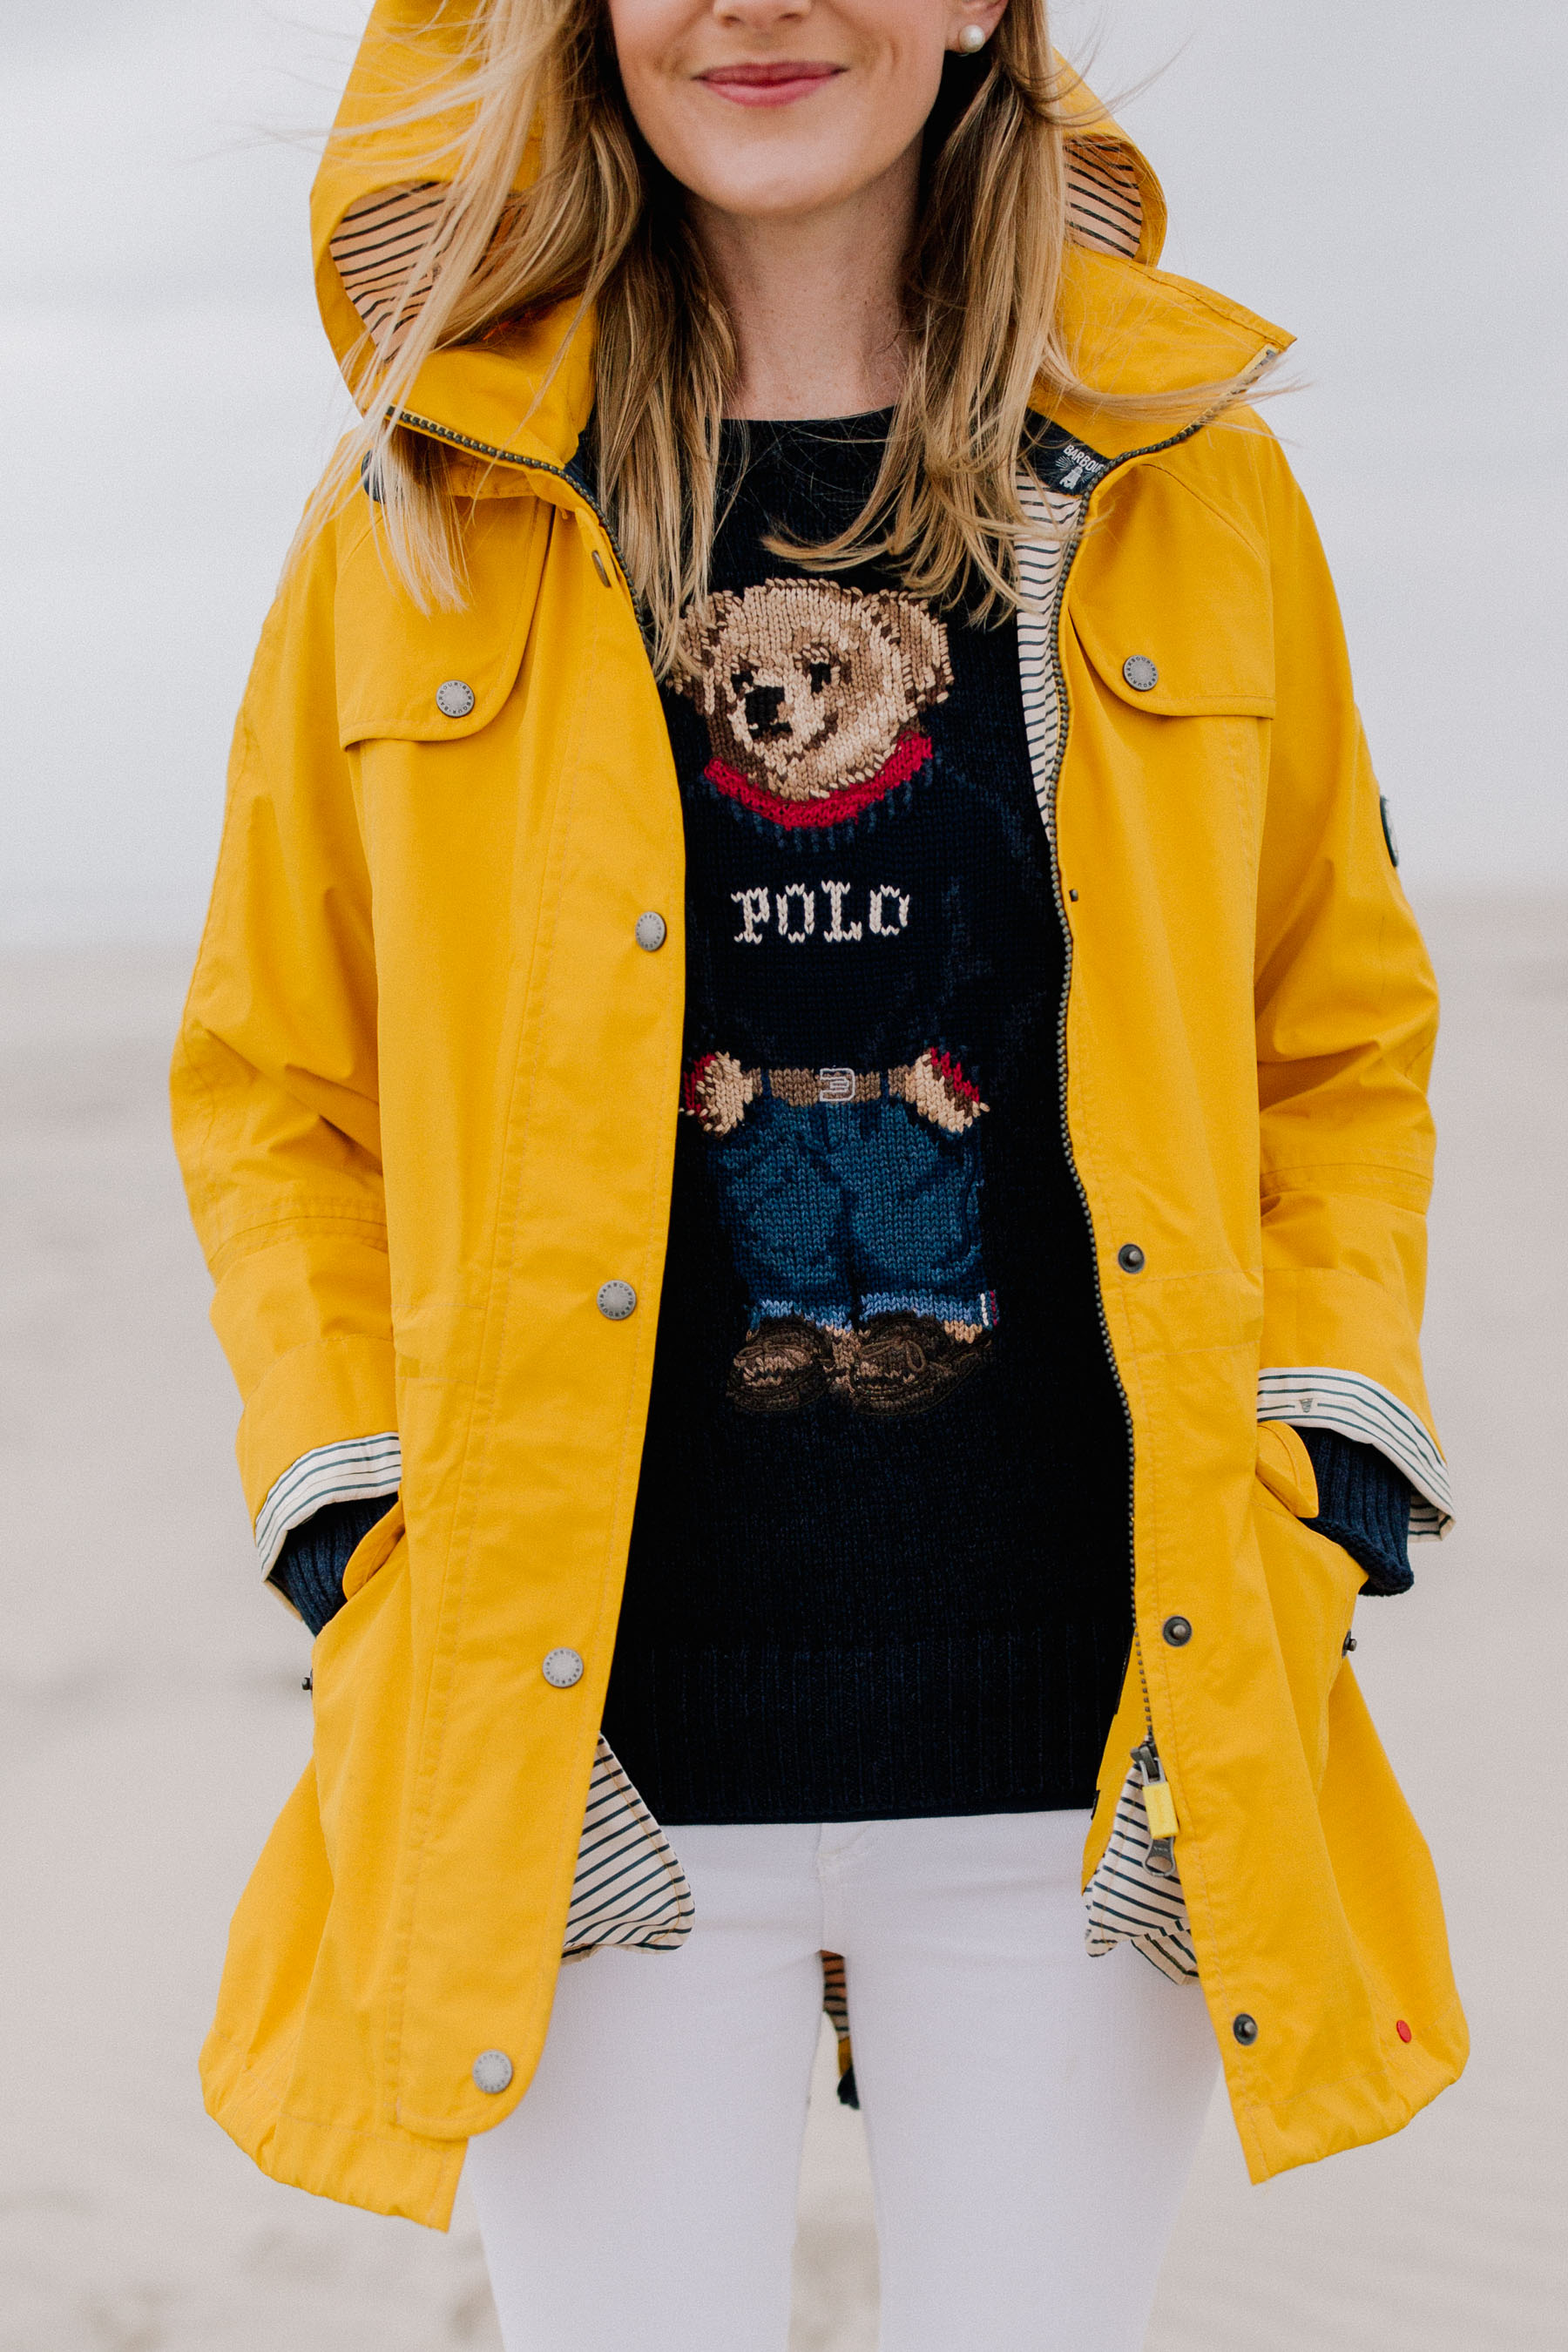 The Cutest Yellow Rain Jacket Plus A Ralph Lauren Teddy Bear Sweater